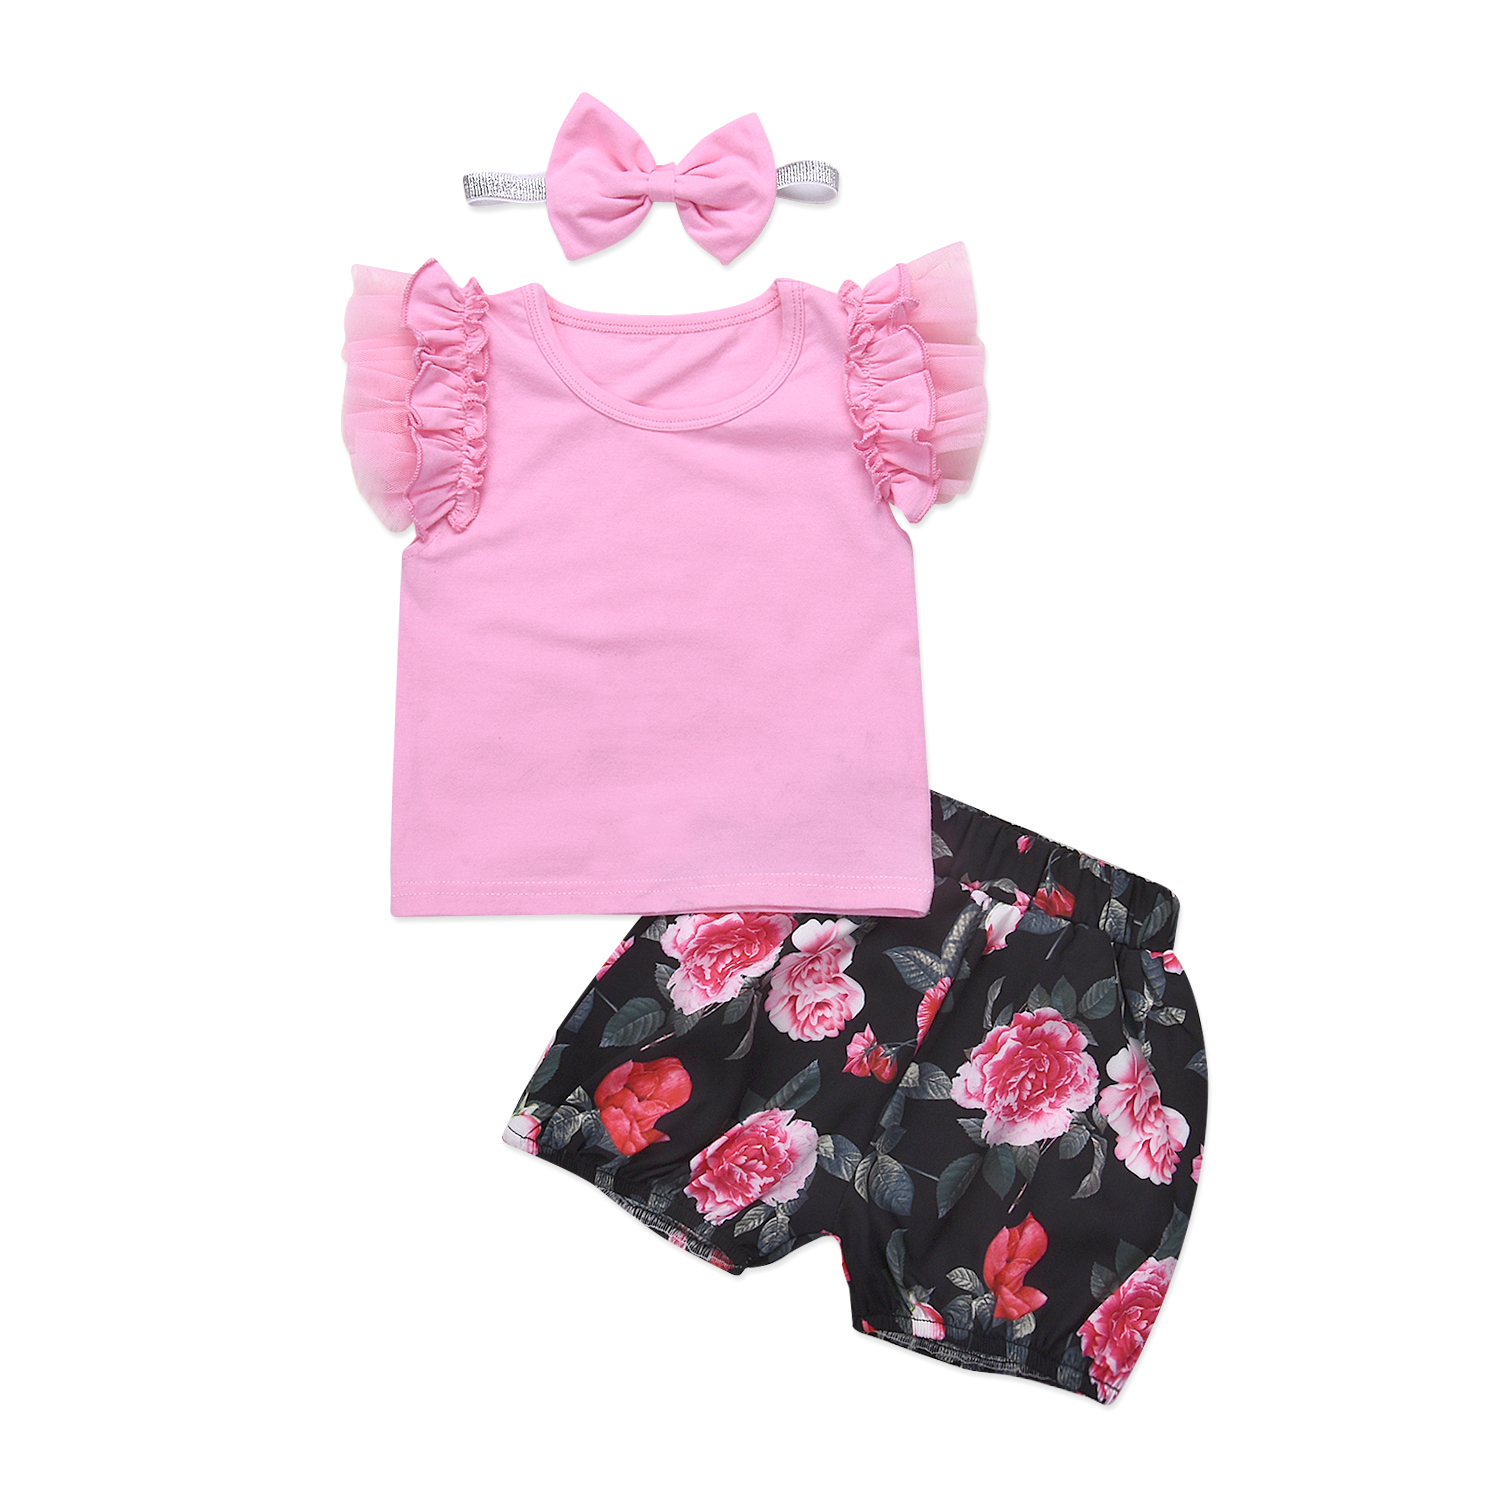 Floral Newborn Kids Baby Girls Clothing Lace Tops T-shirt Shorts Cotton Casual Sleeveless Clothes Summer Baby Girl 0-3TFloral Newborn Kids Baby Girls Clothing Lace Tops T-shirt Shorts Cotton Casual Sleeveless Clothes Summer Baby Girl 0-3T